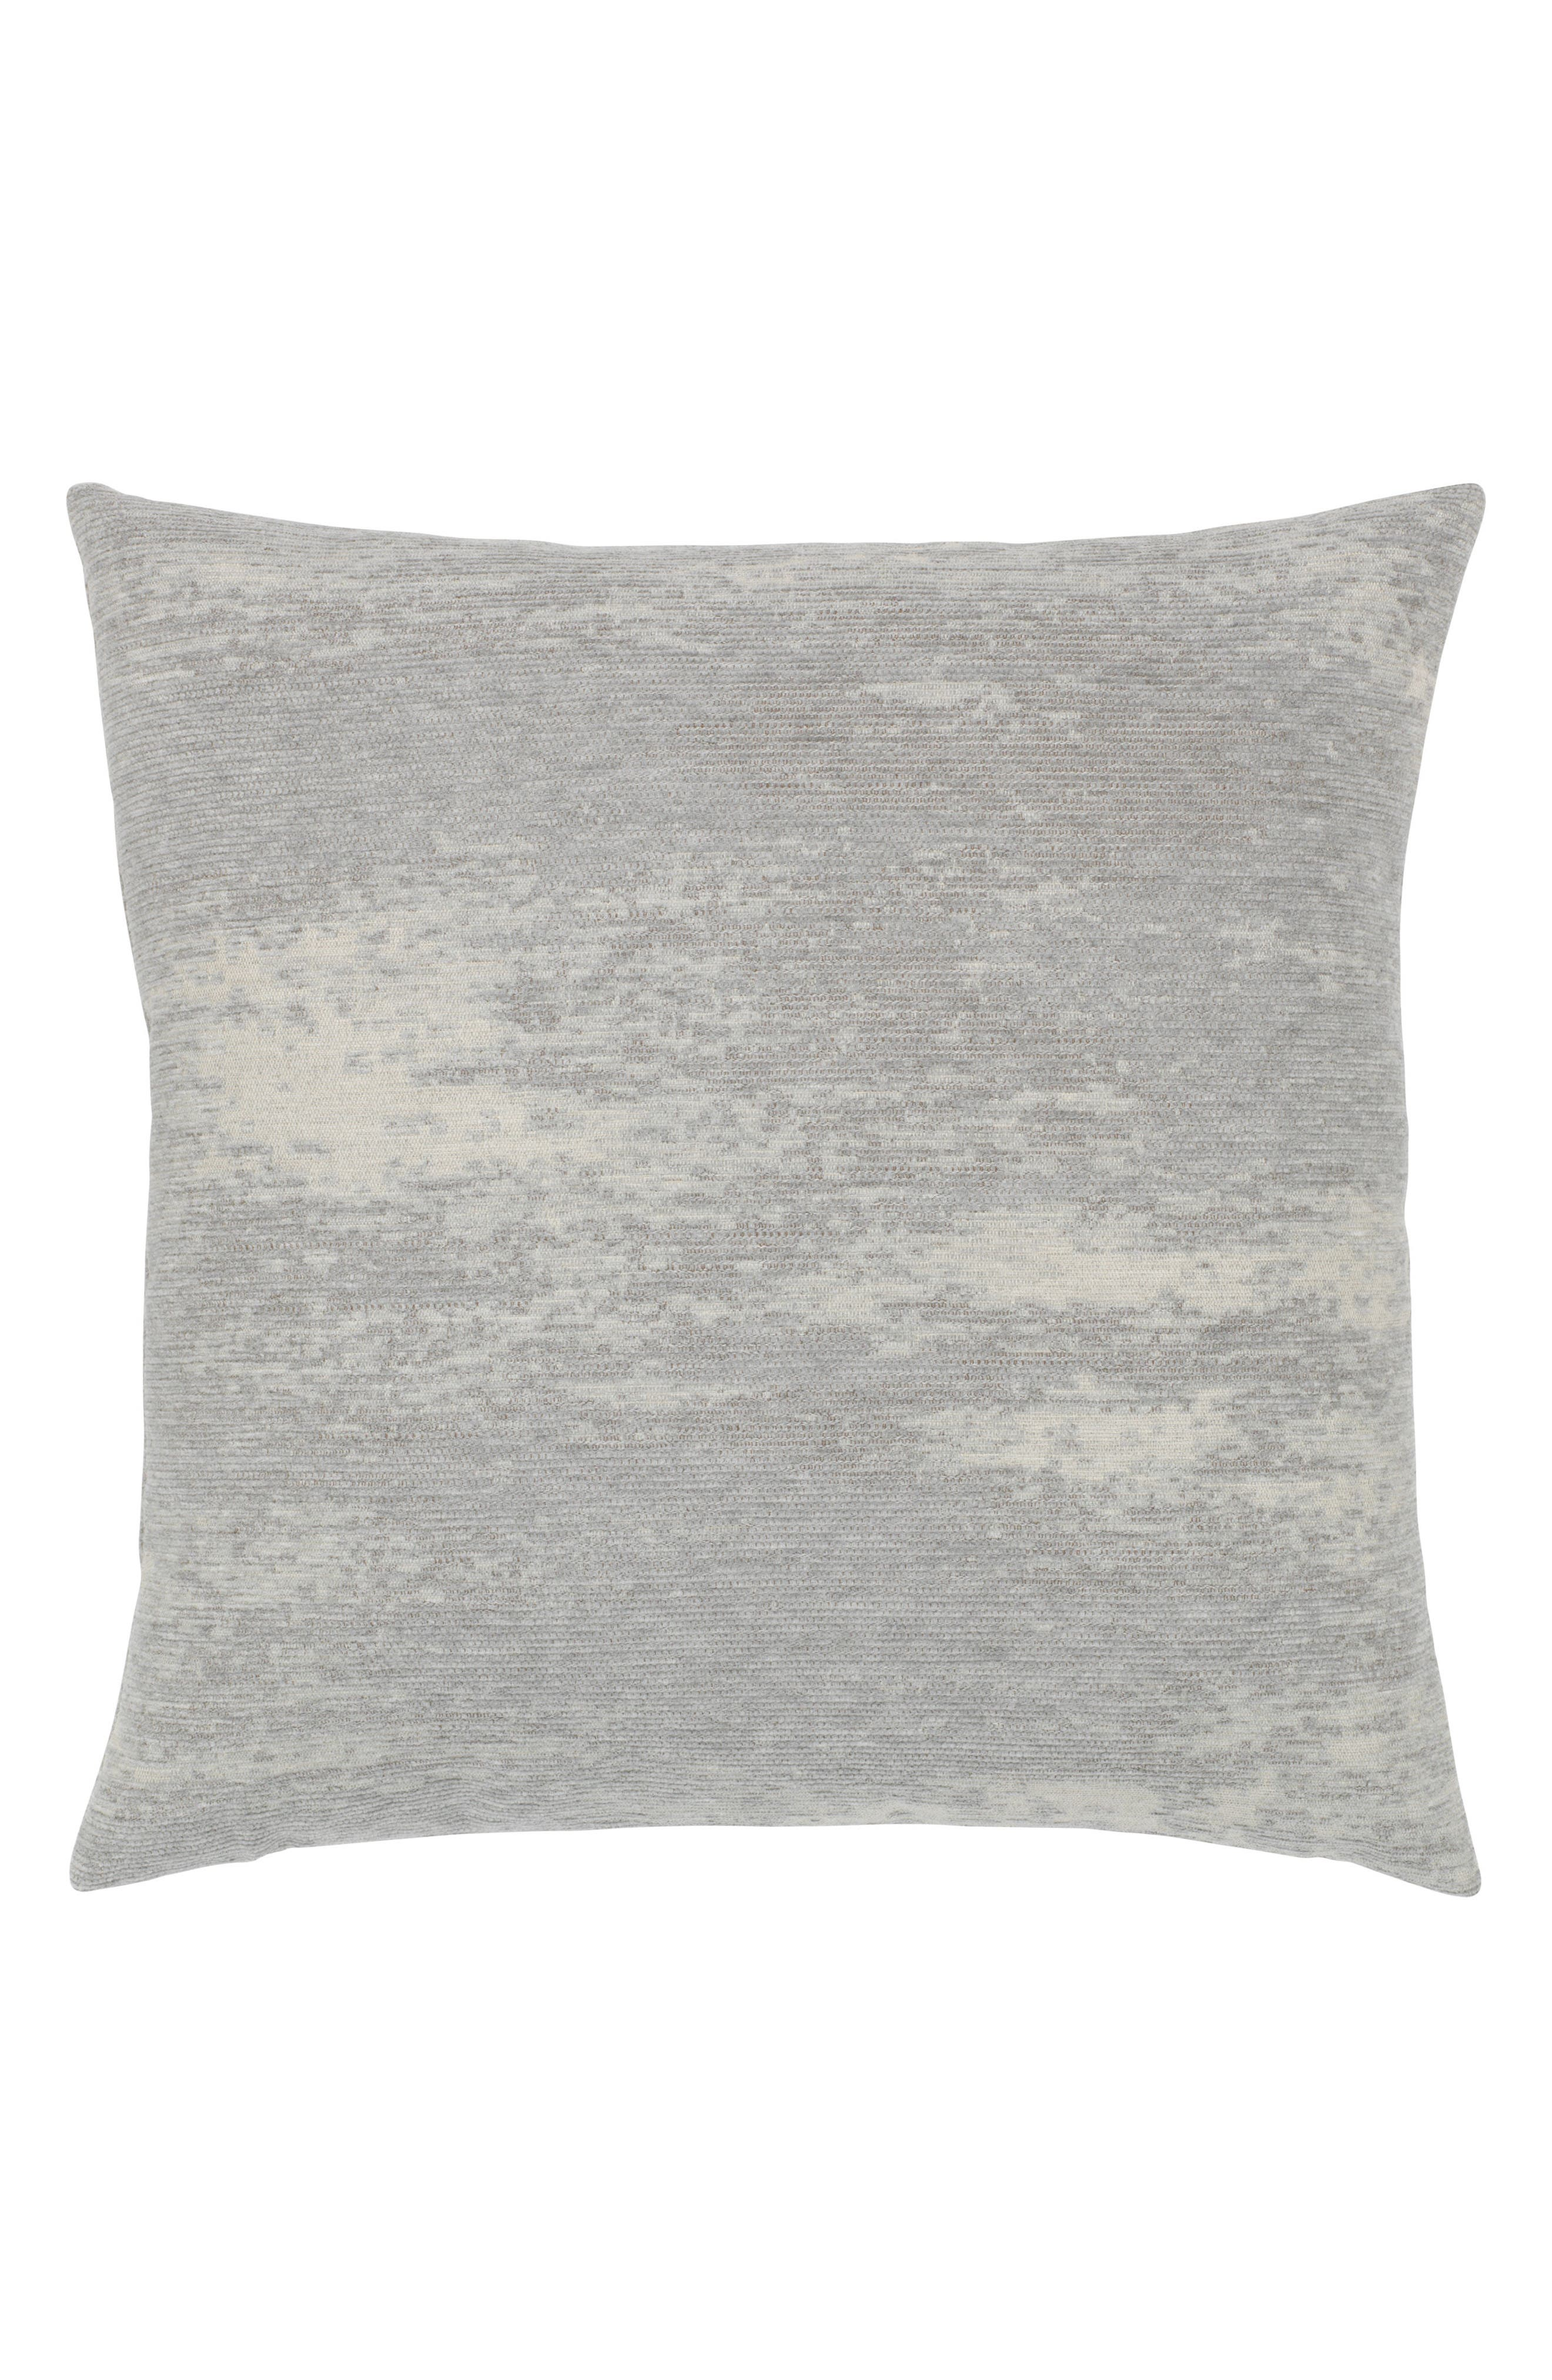 Distressed Granite Indoor/Outdoor Accent Pillow,                             Main thumbnail 1, color,                             Grey